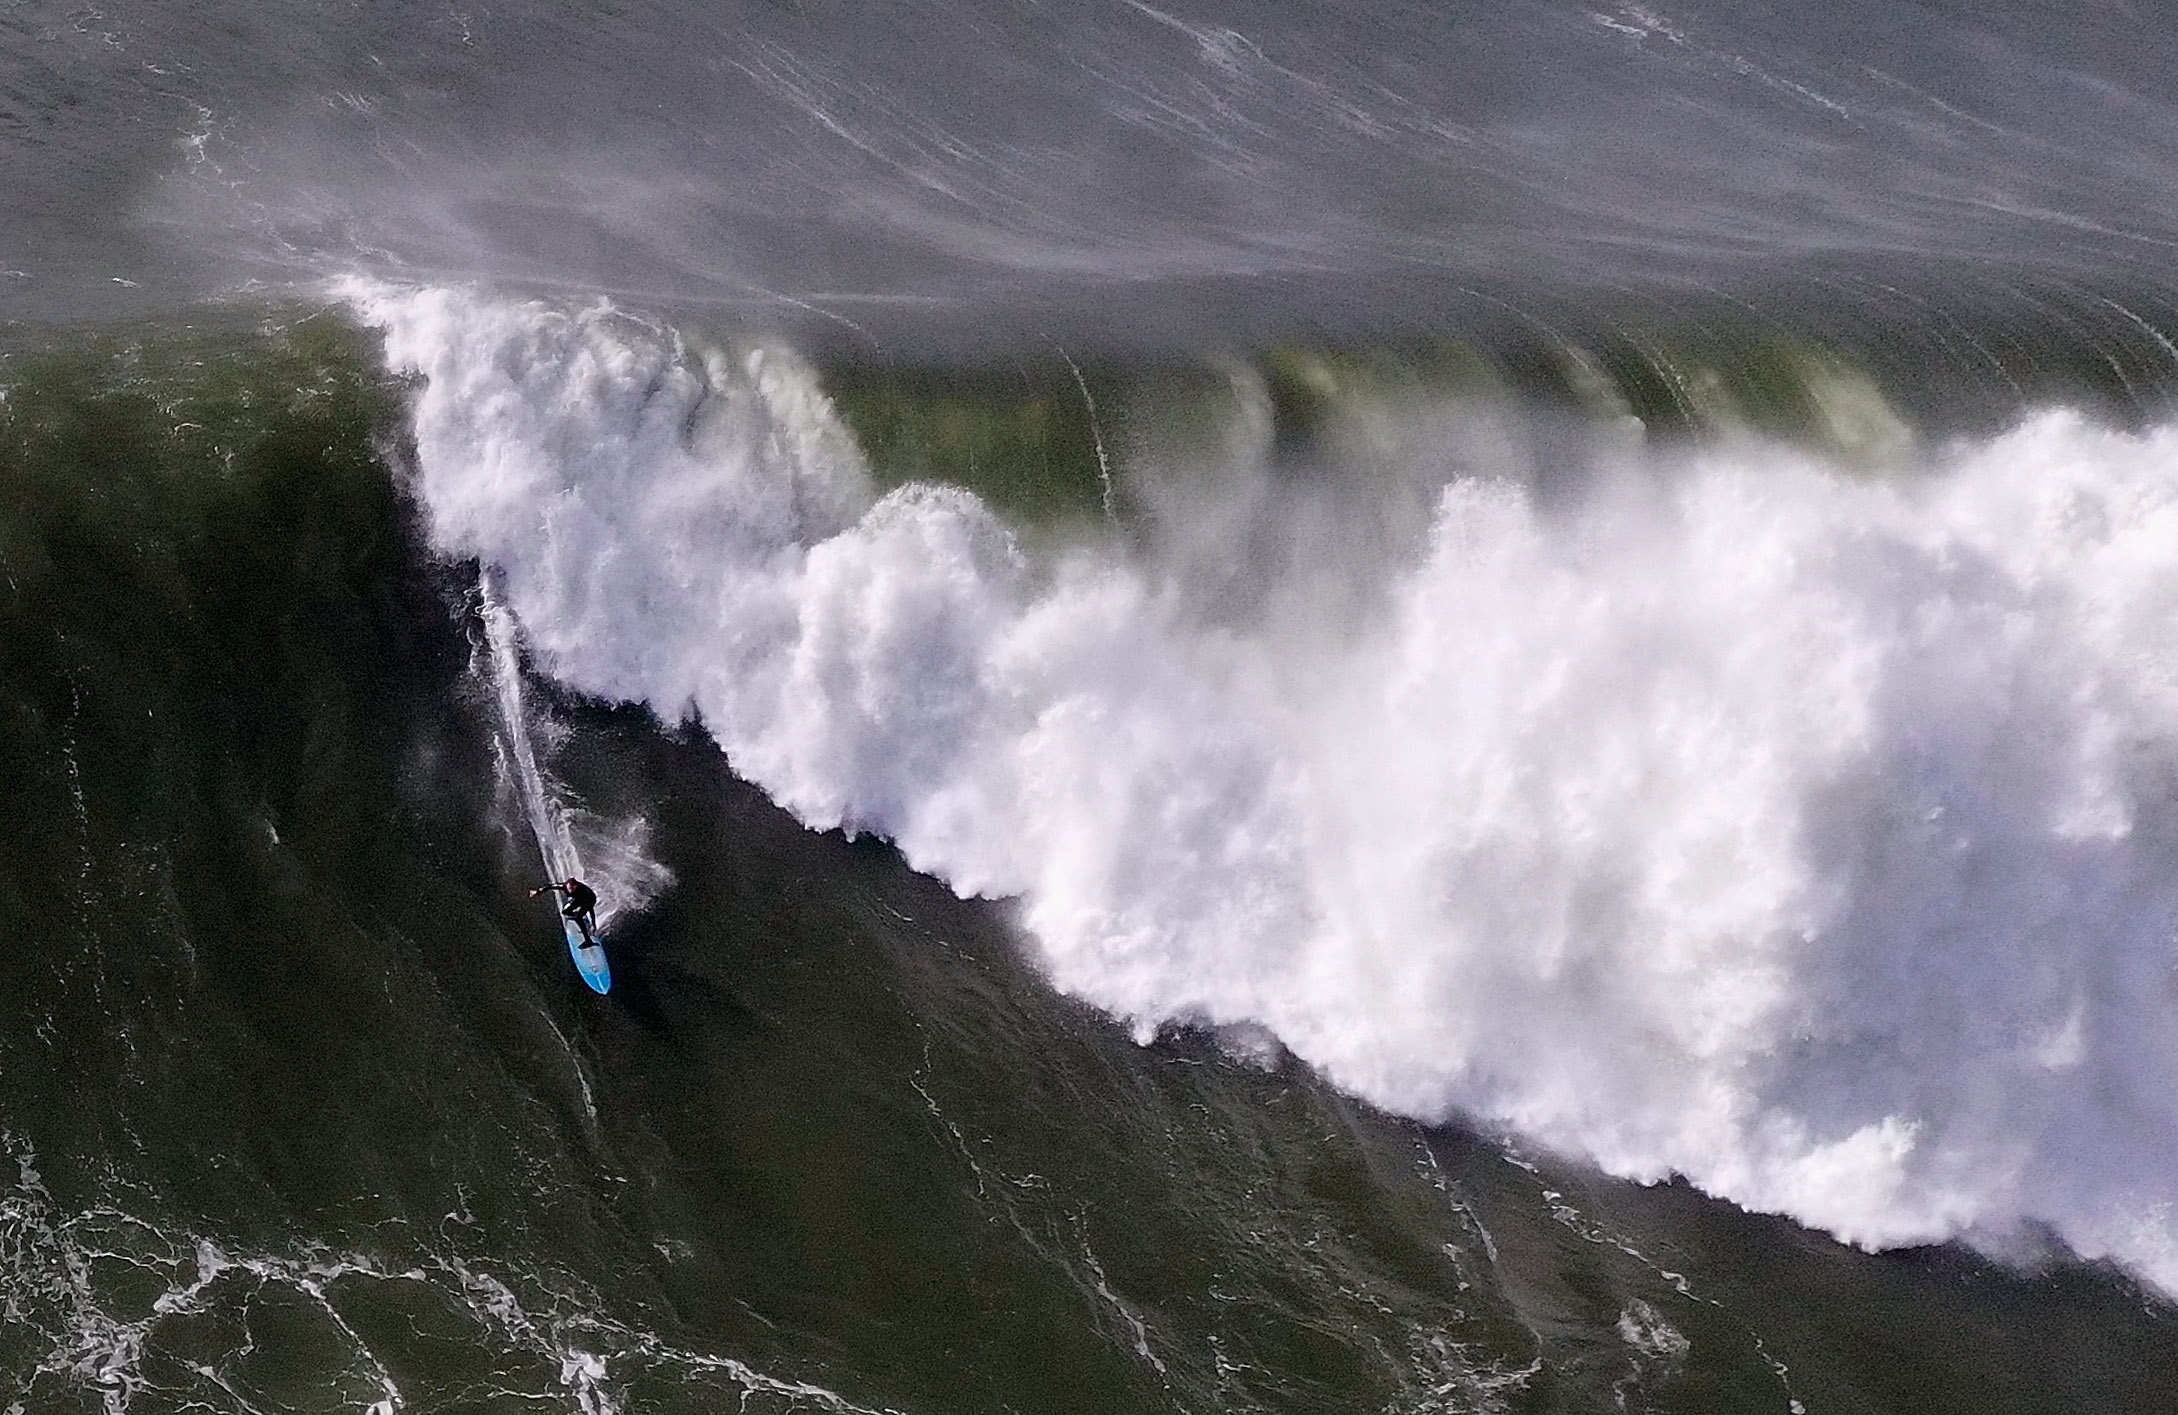 A surfer rides a giant wave at Mavericks on Dec. 17, 2018, in Half Moon Bay. (Credit: Ezra Shaw/Getty Images)